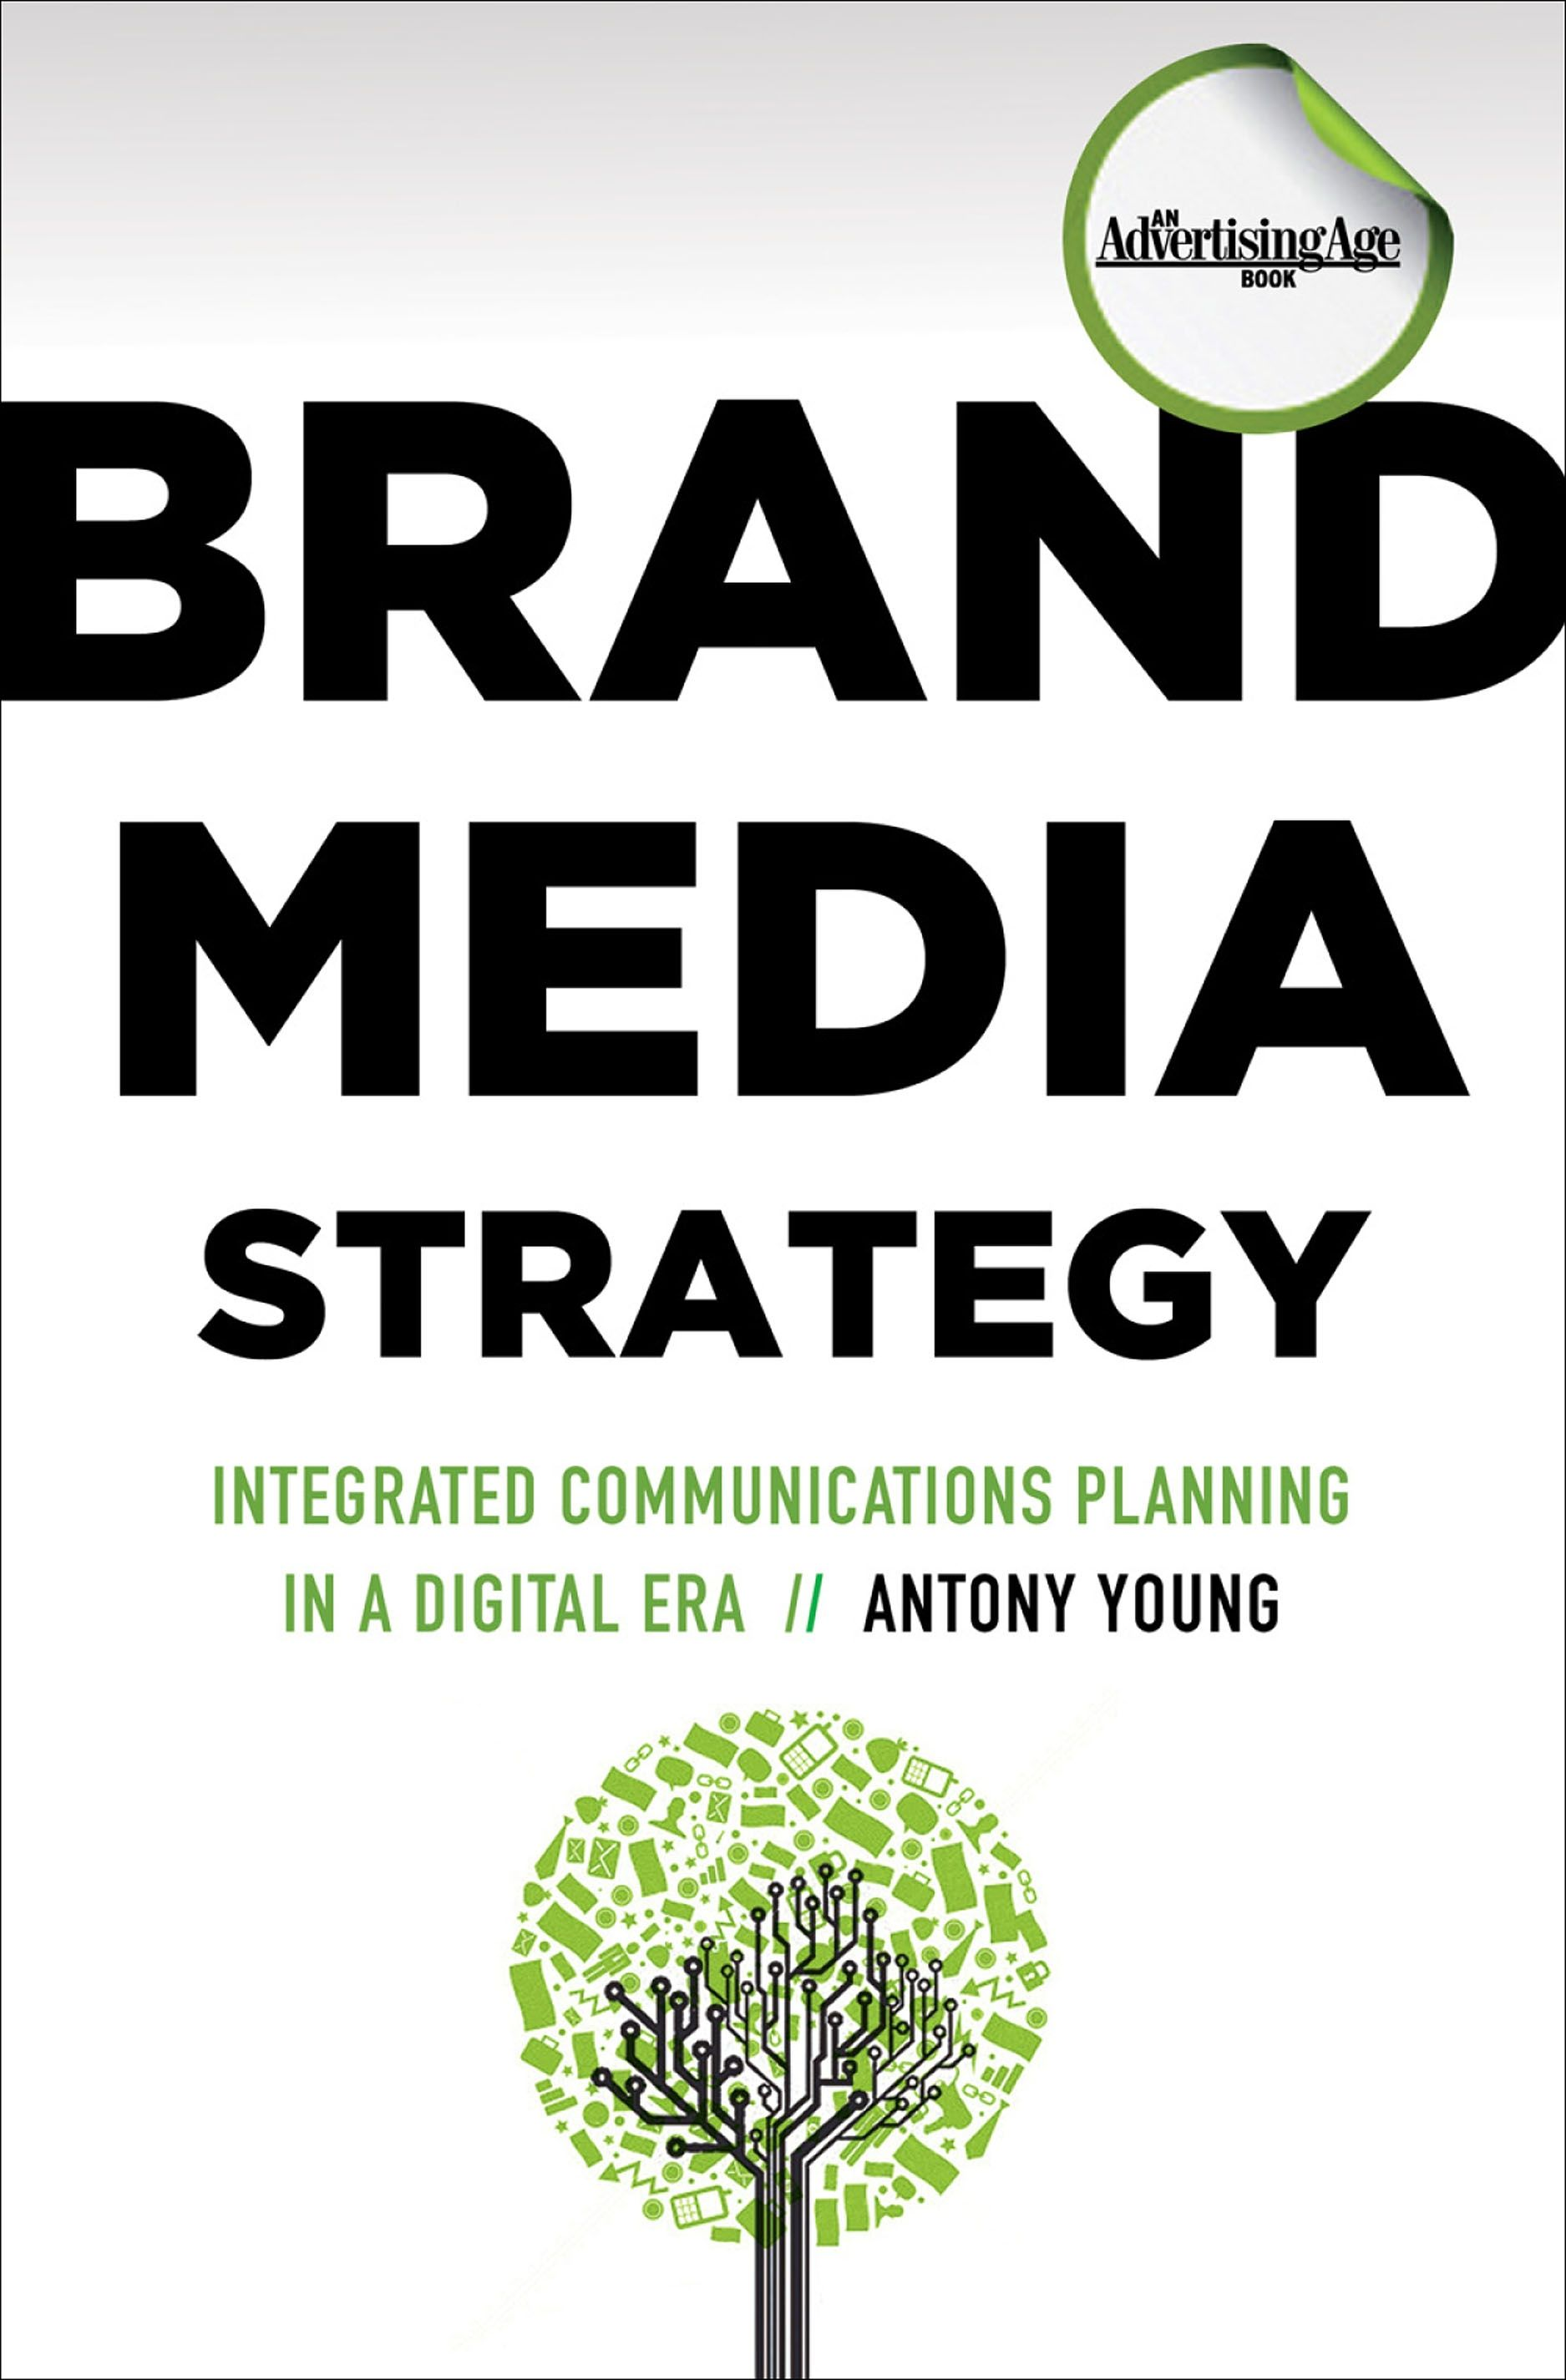 Brand Media Strategy: Integrated Communications Planning in a Digital Era, by Antony Young. #adage #advertising #strategy